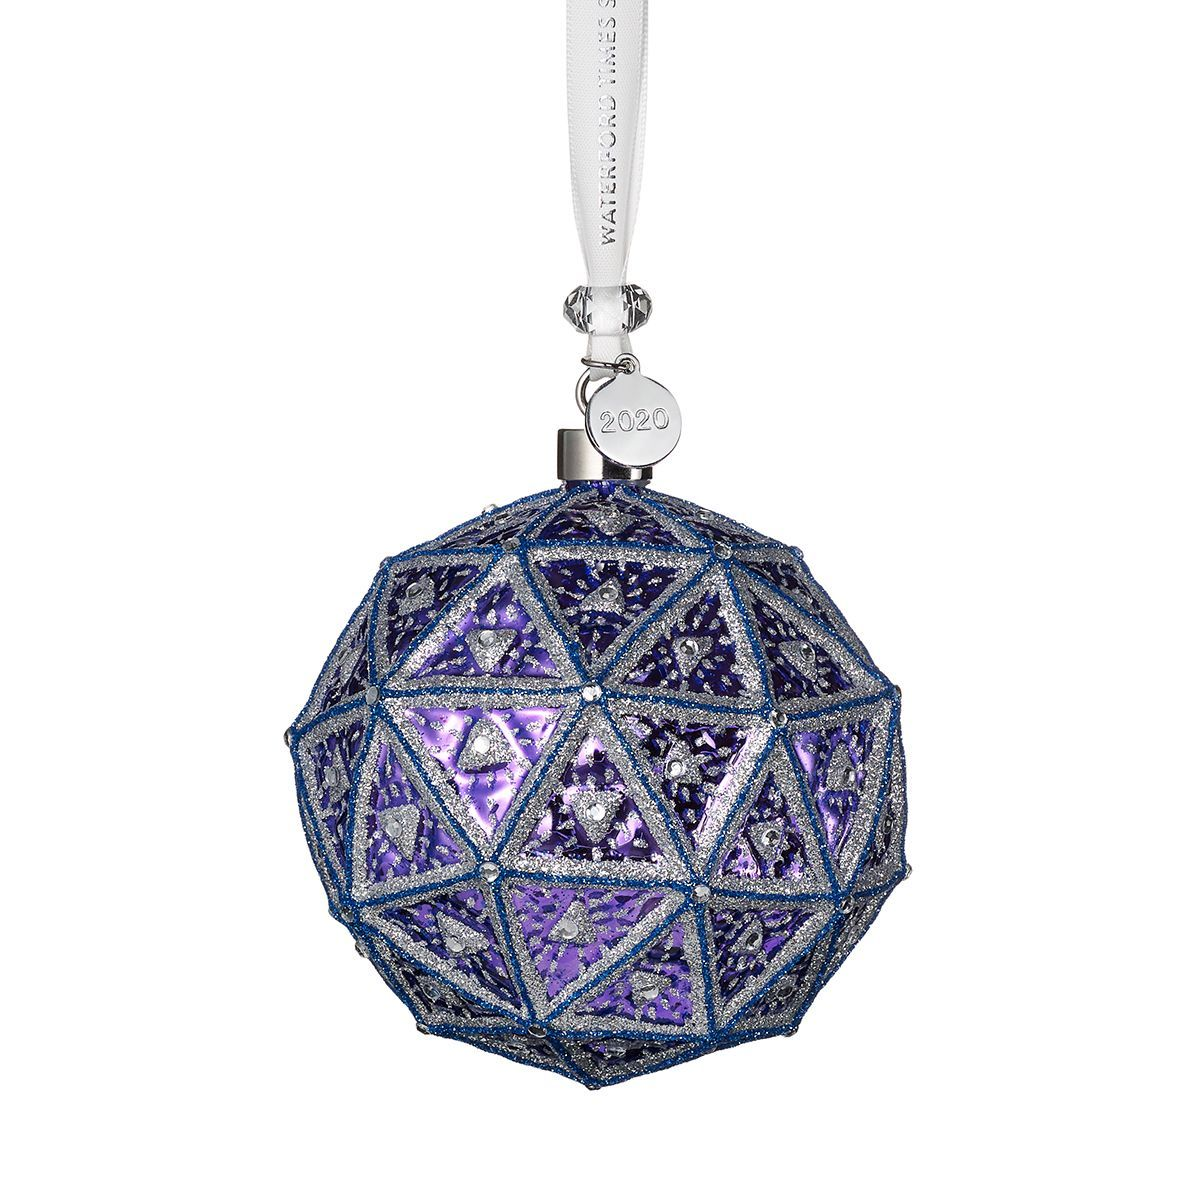 2020 Times Square Small Replica Ball Ornament How to